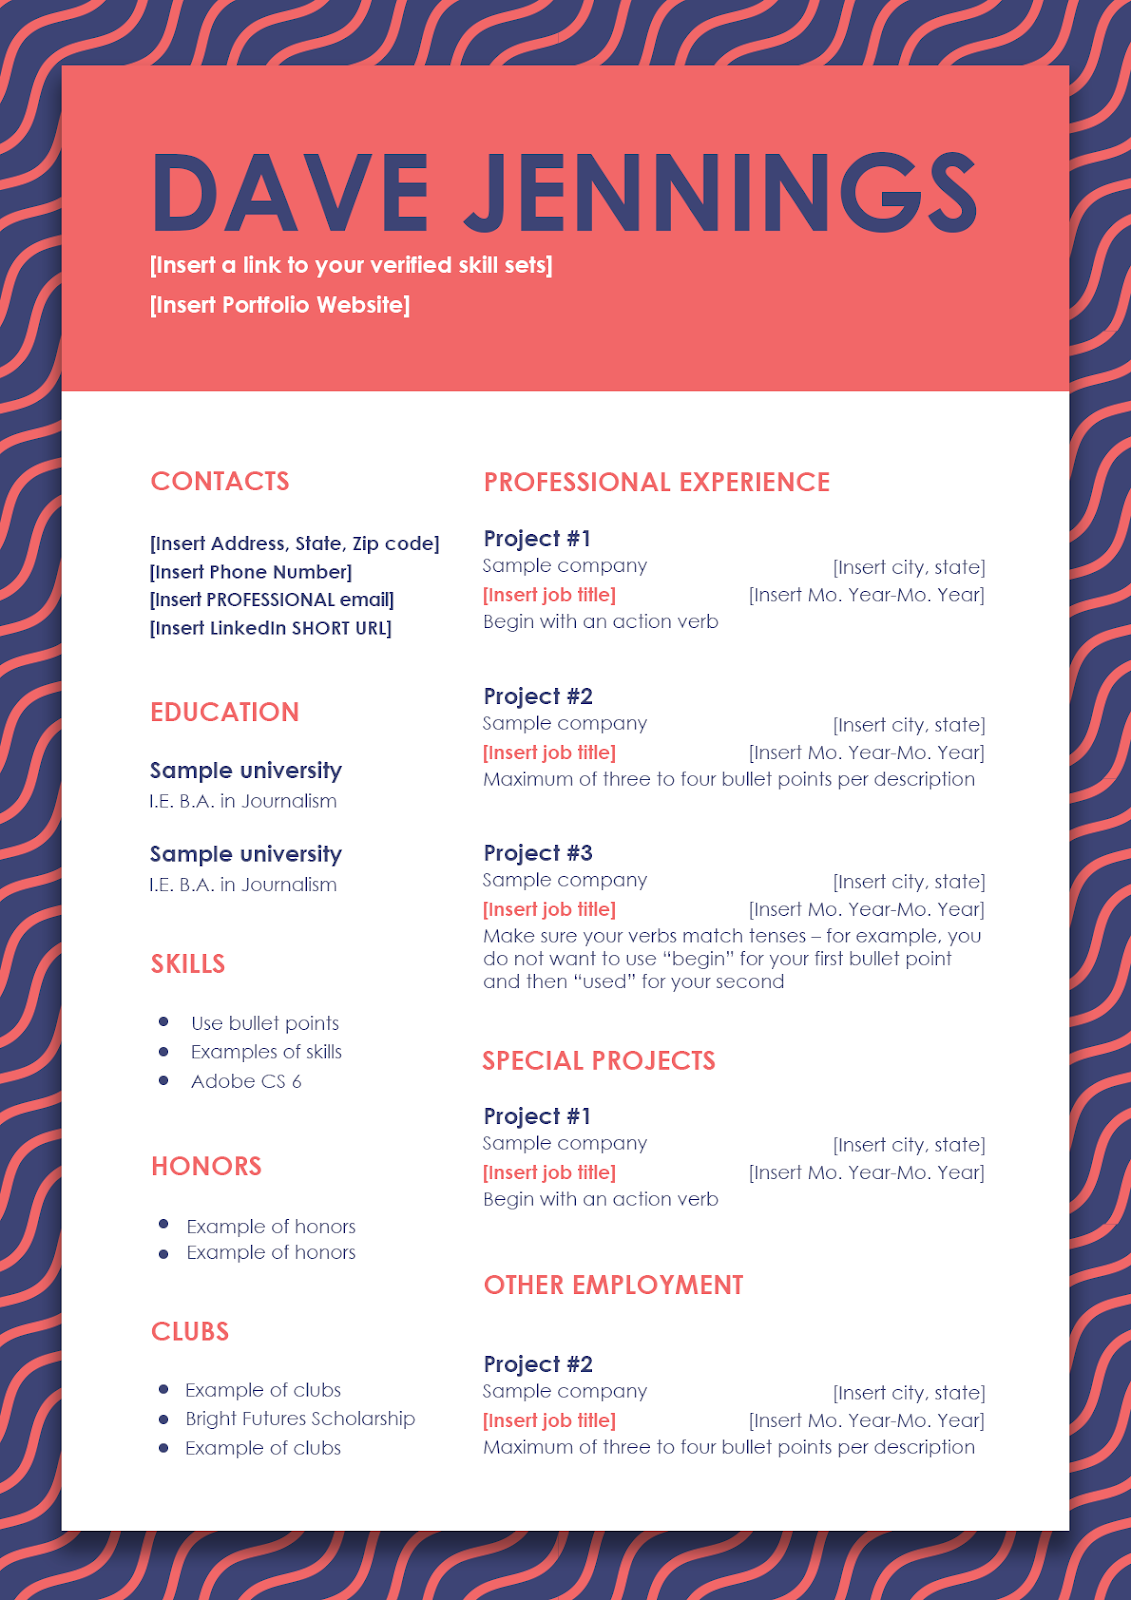 10 Free Psd Resume Templates To Help Yours Stand Out | Goskills